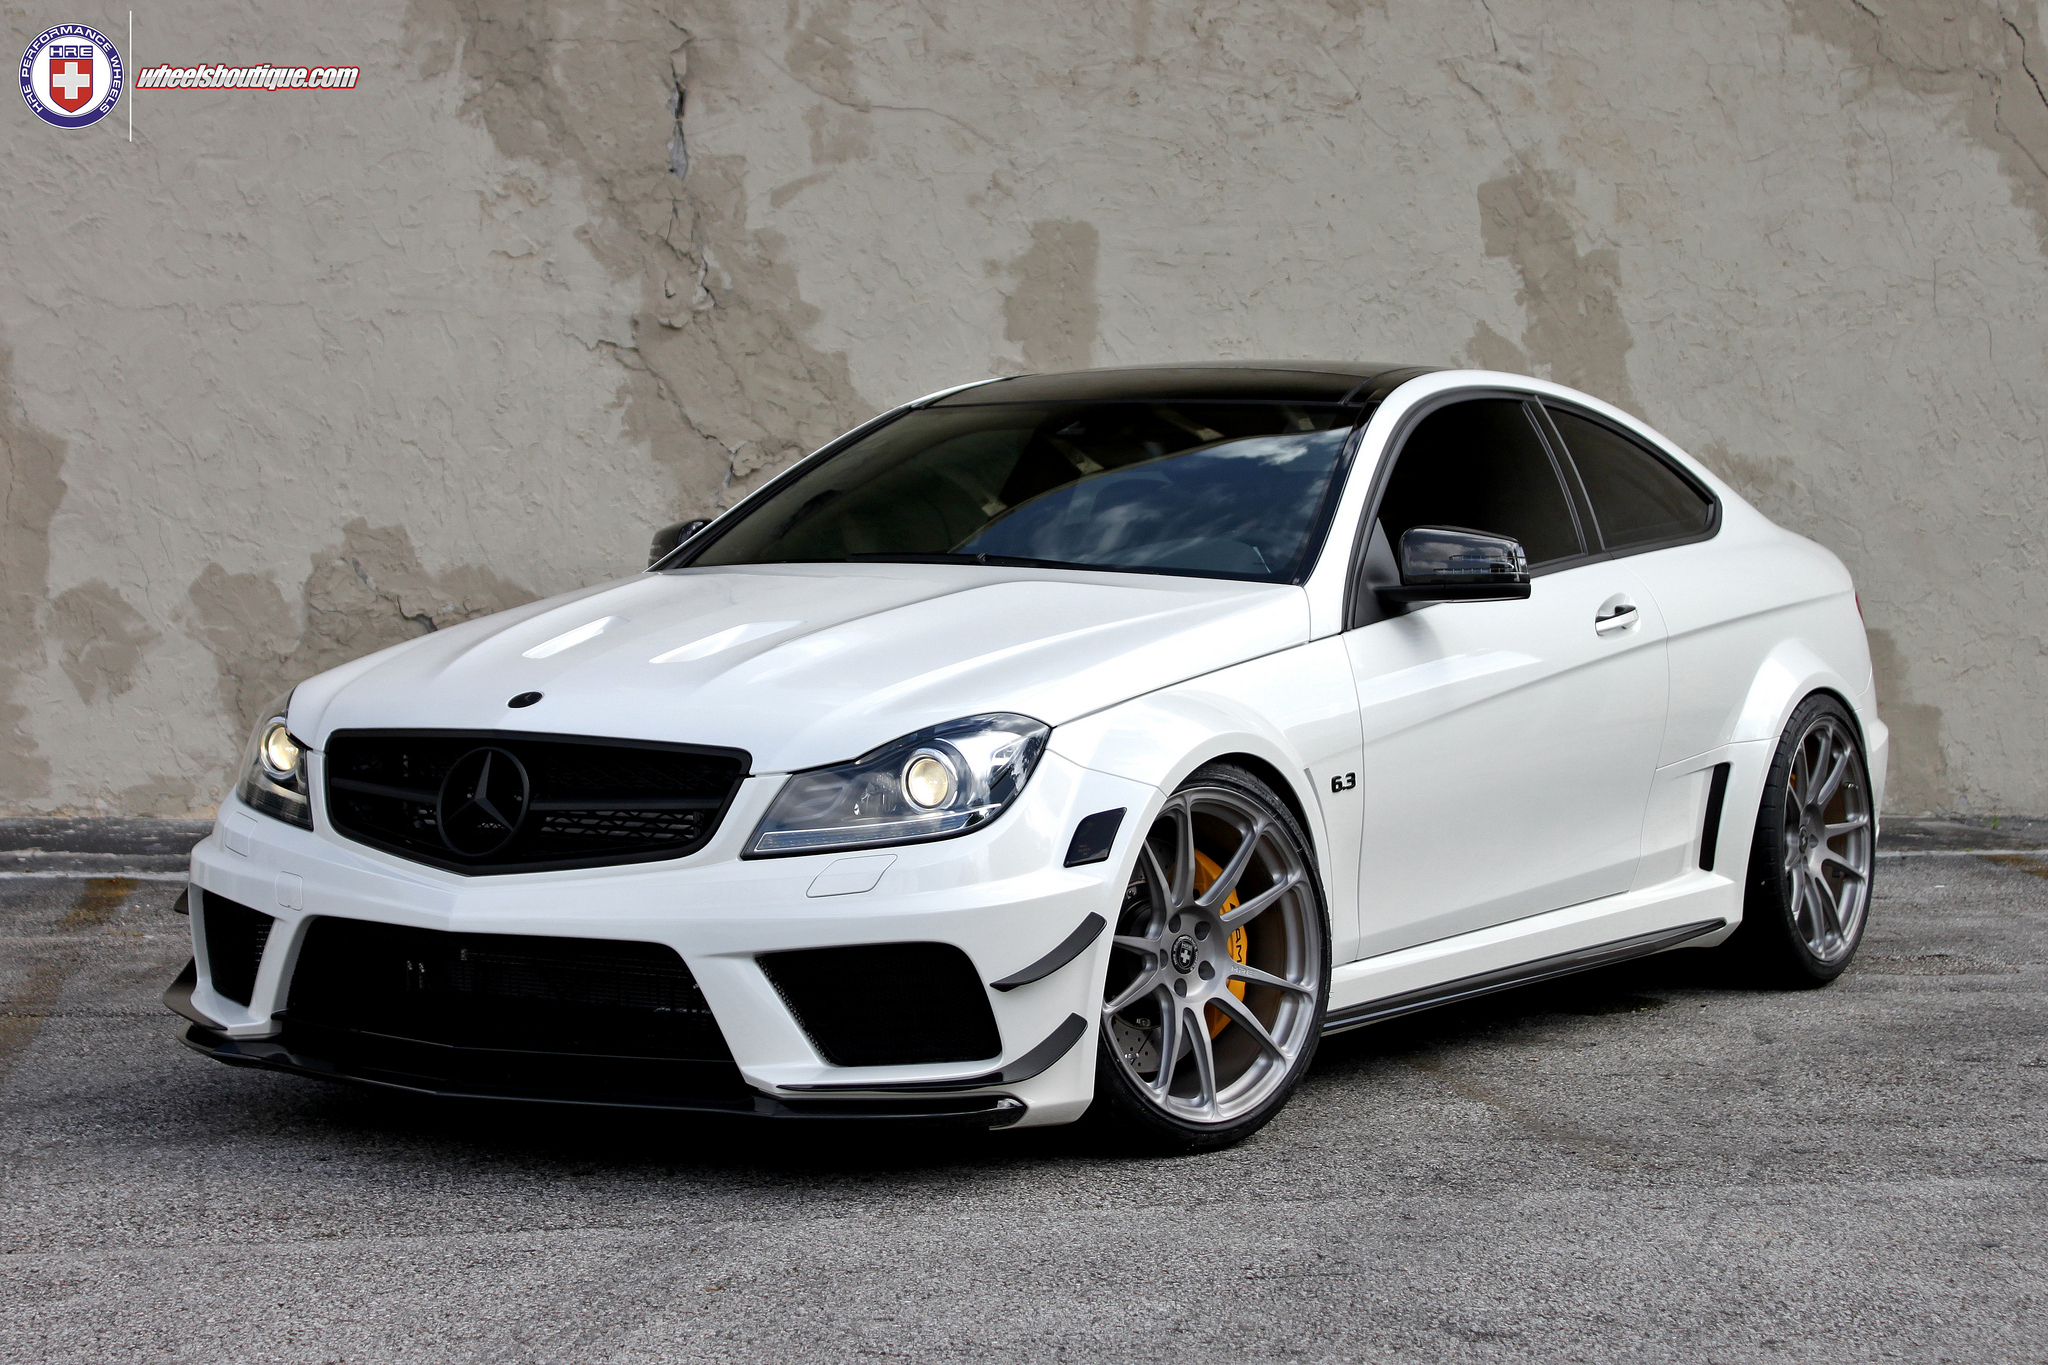 Mercedes tuning wheels boutique hre tweaked c63 amg black for C63 mercedes benz